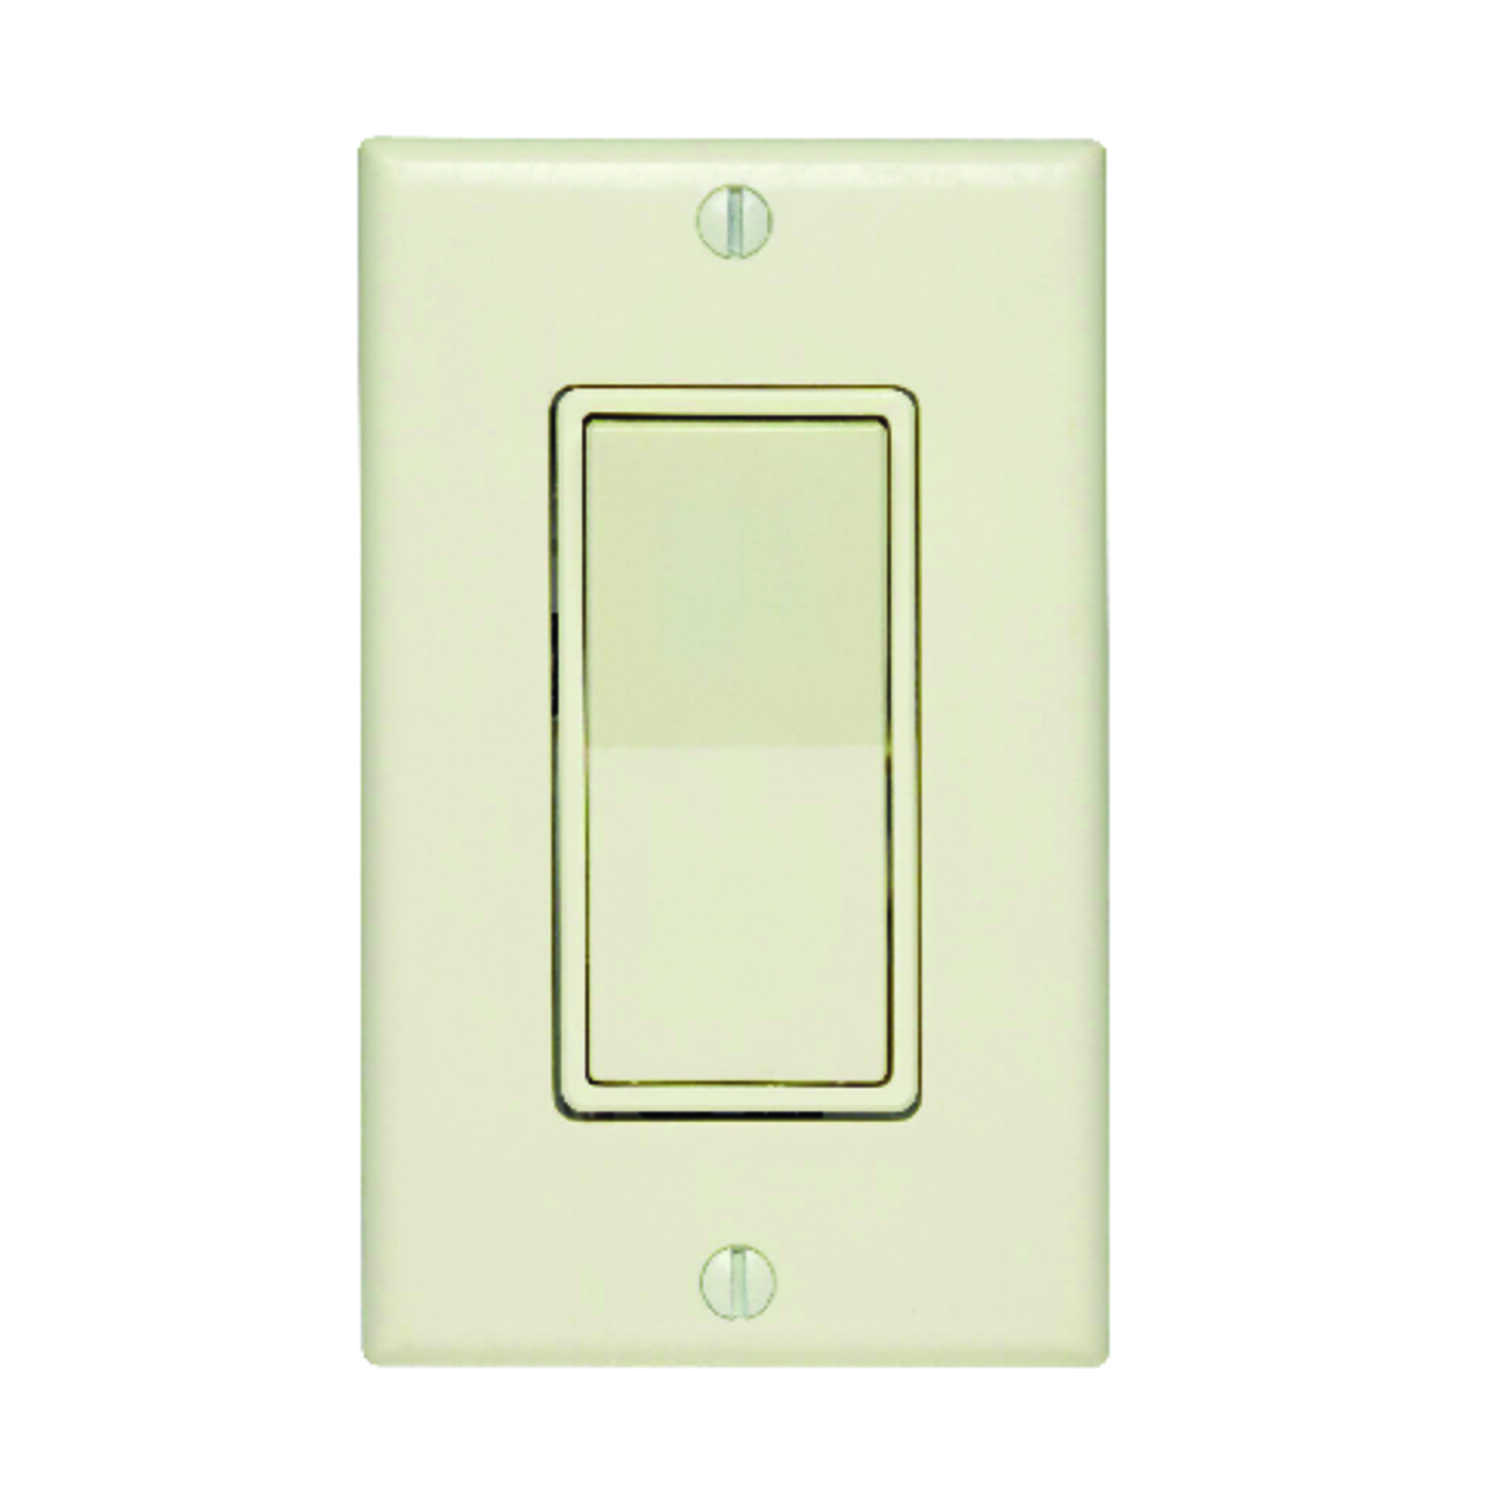 Leviton  15 amps 15 amps Rocker  1 pk Light Almond  Switch